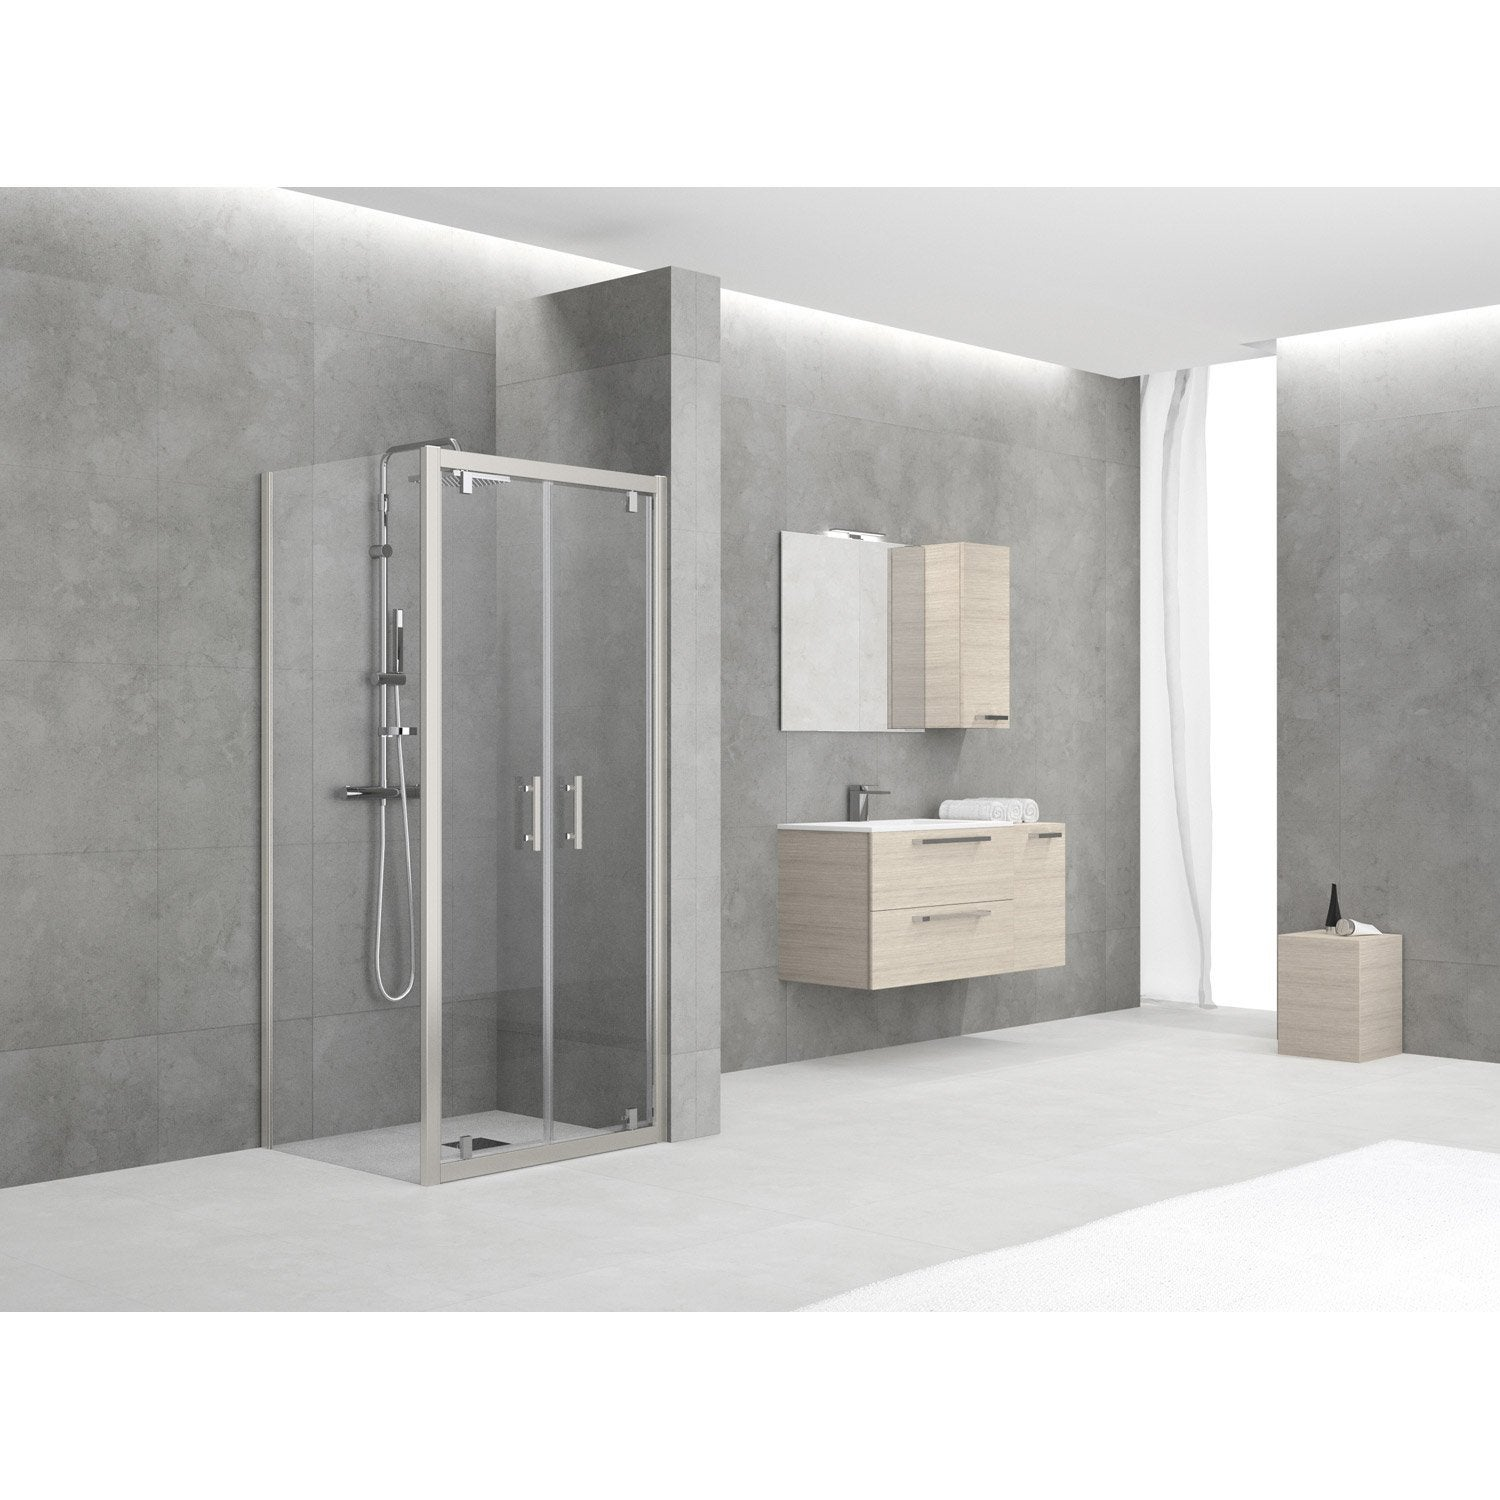 porte de douche battante 84 90 cm profil chrom elyt. Black Bedroom Furniture Sets. Home Design Ideas